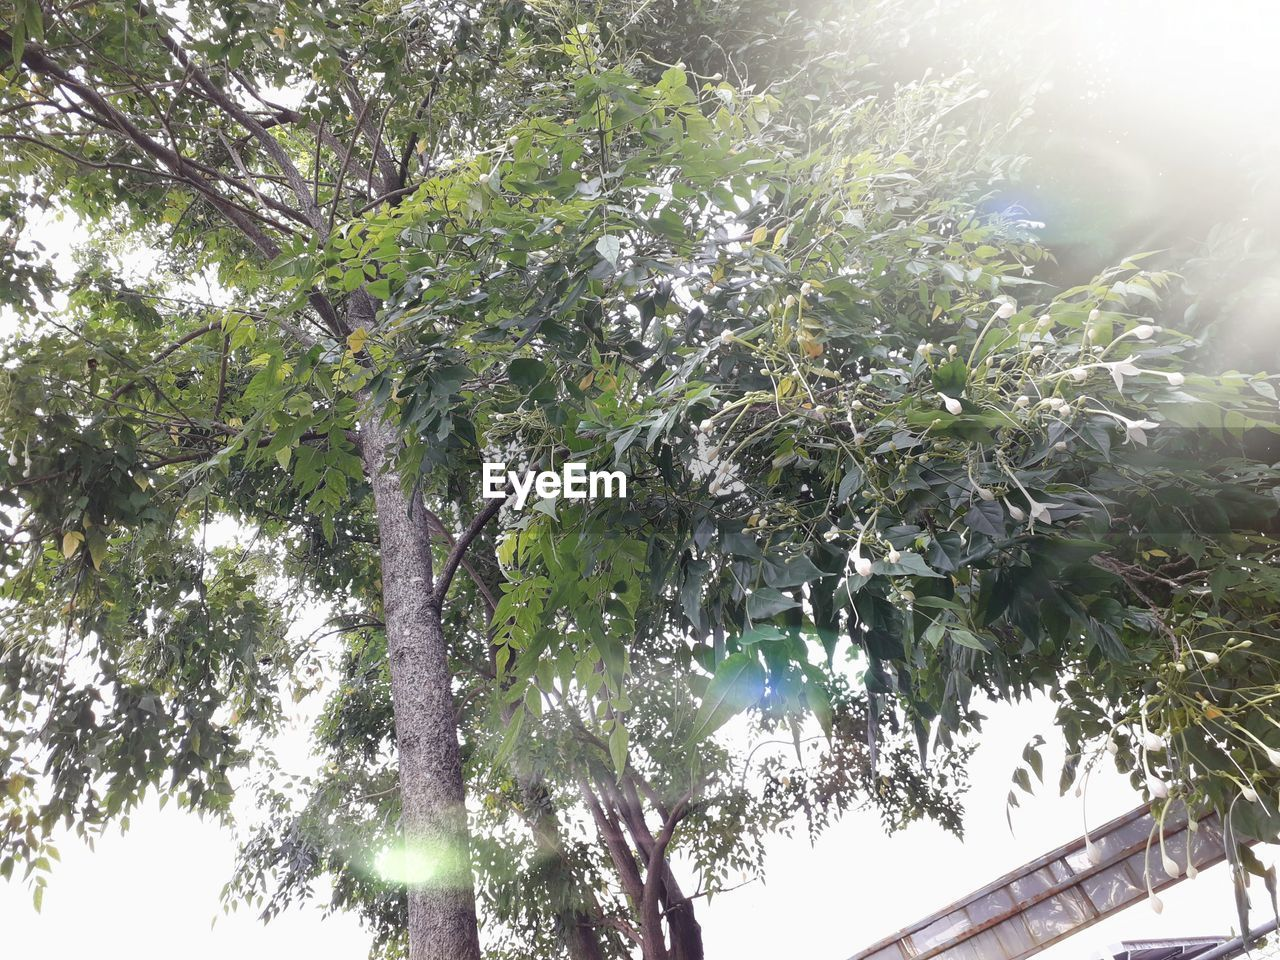 plant, tree, growth, low angle view, nature, beauty in nature, day, green color, no people, tranquility, sky, leaf, branch, sunlight, plant part, outdoors, sunbeam, lens flare, freshness, sunny